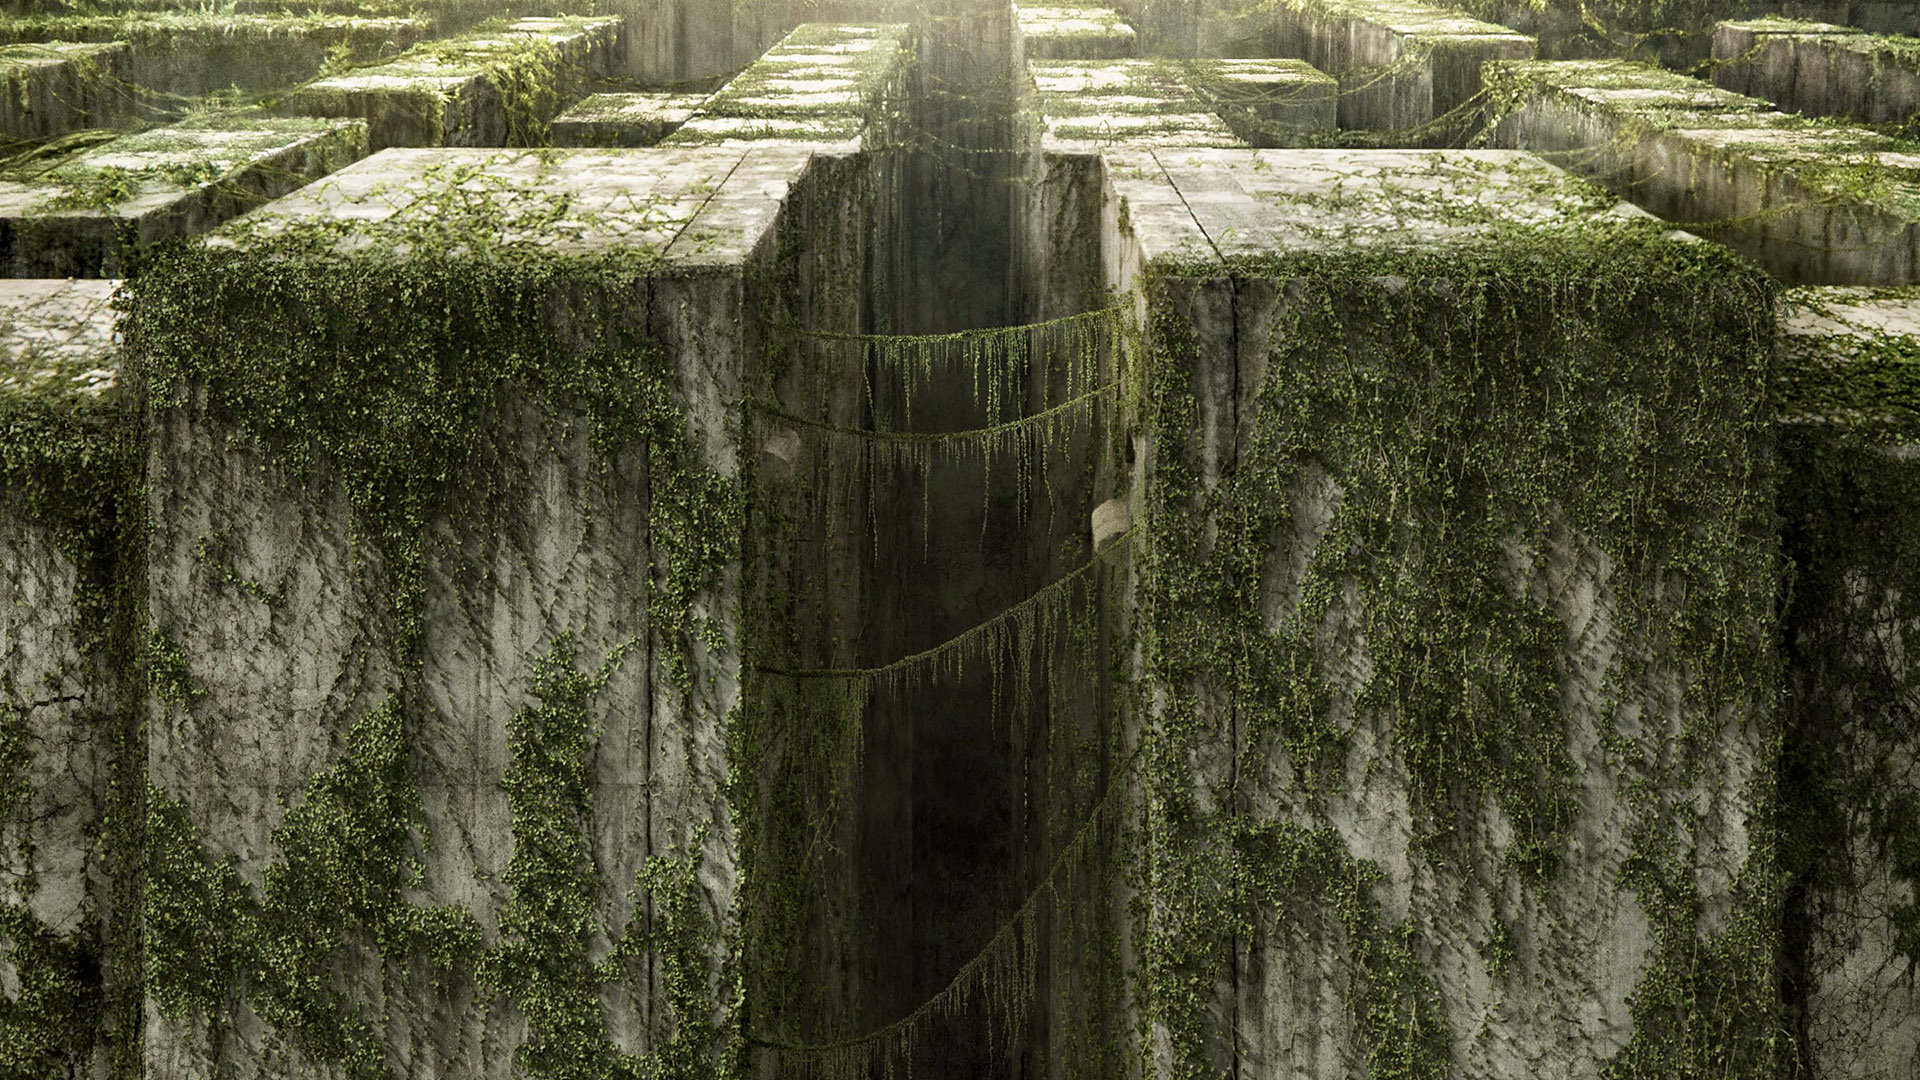 131230 free the maze runner high quality wallpaper id:131230 for